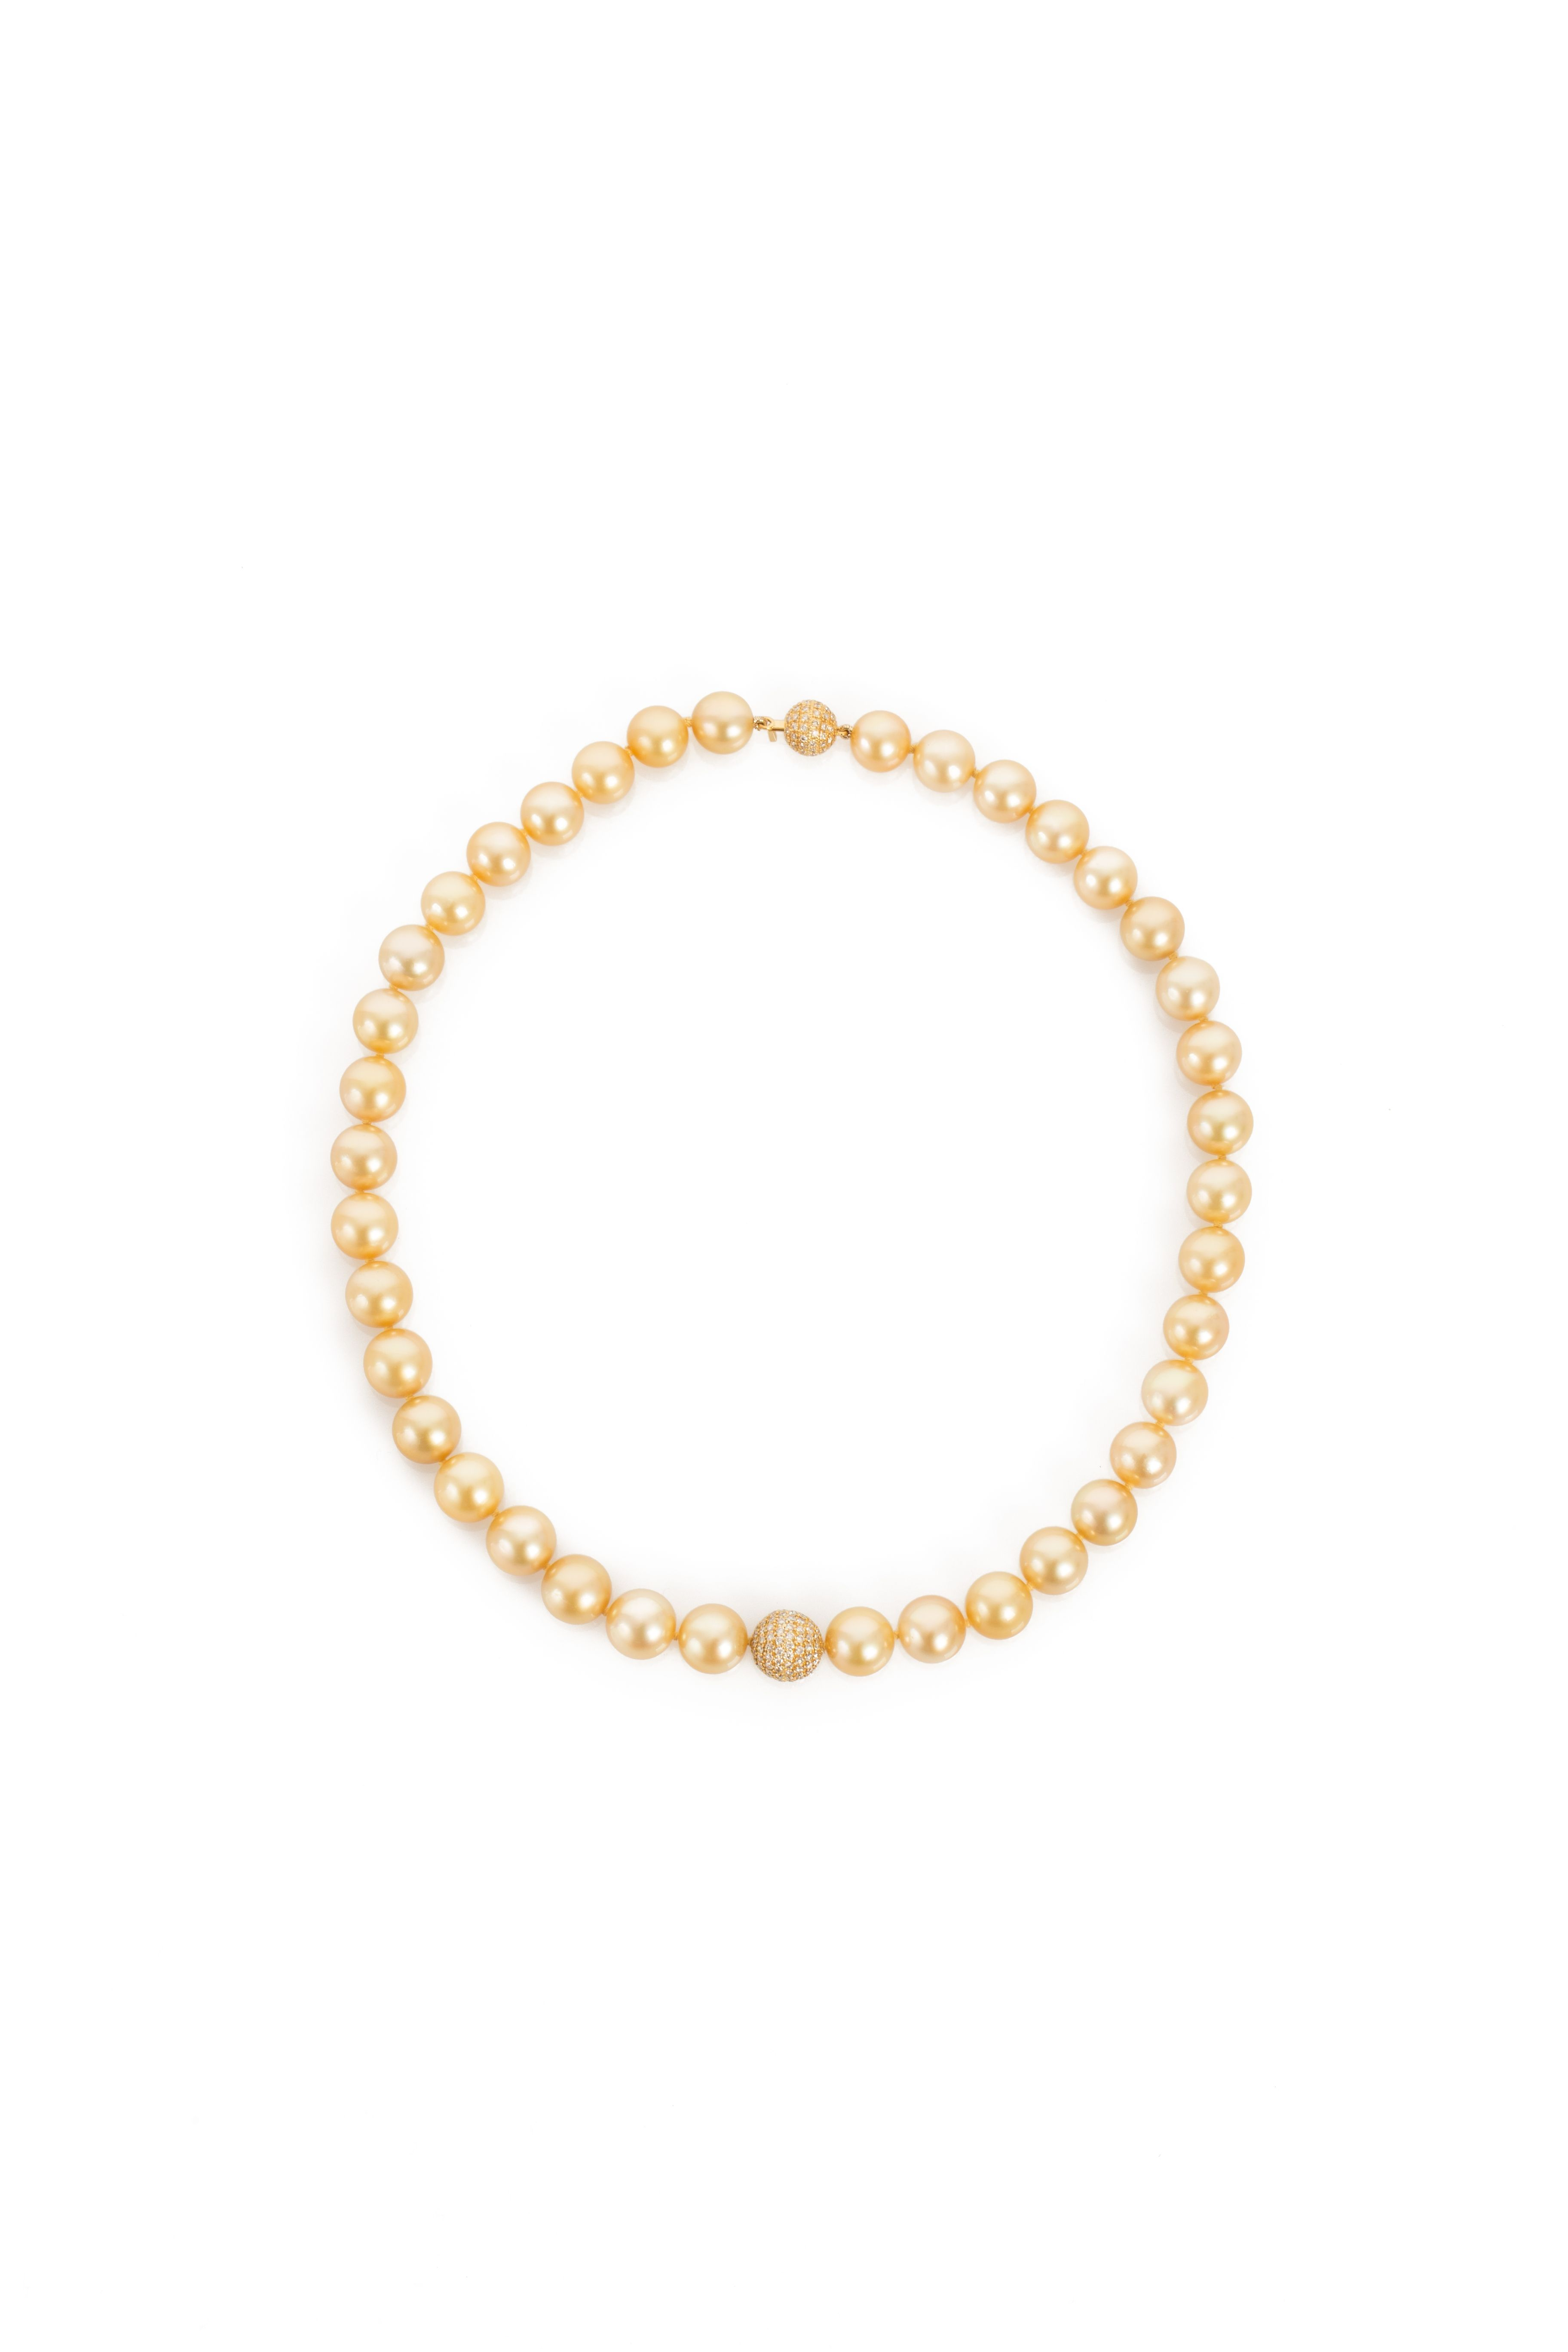 Terry Snider Jewelry Golden Keshi Pearl Necklace with Diamond Pave Ball